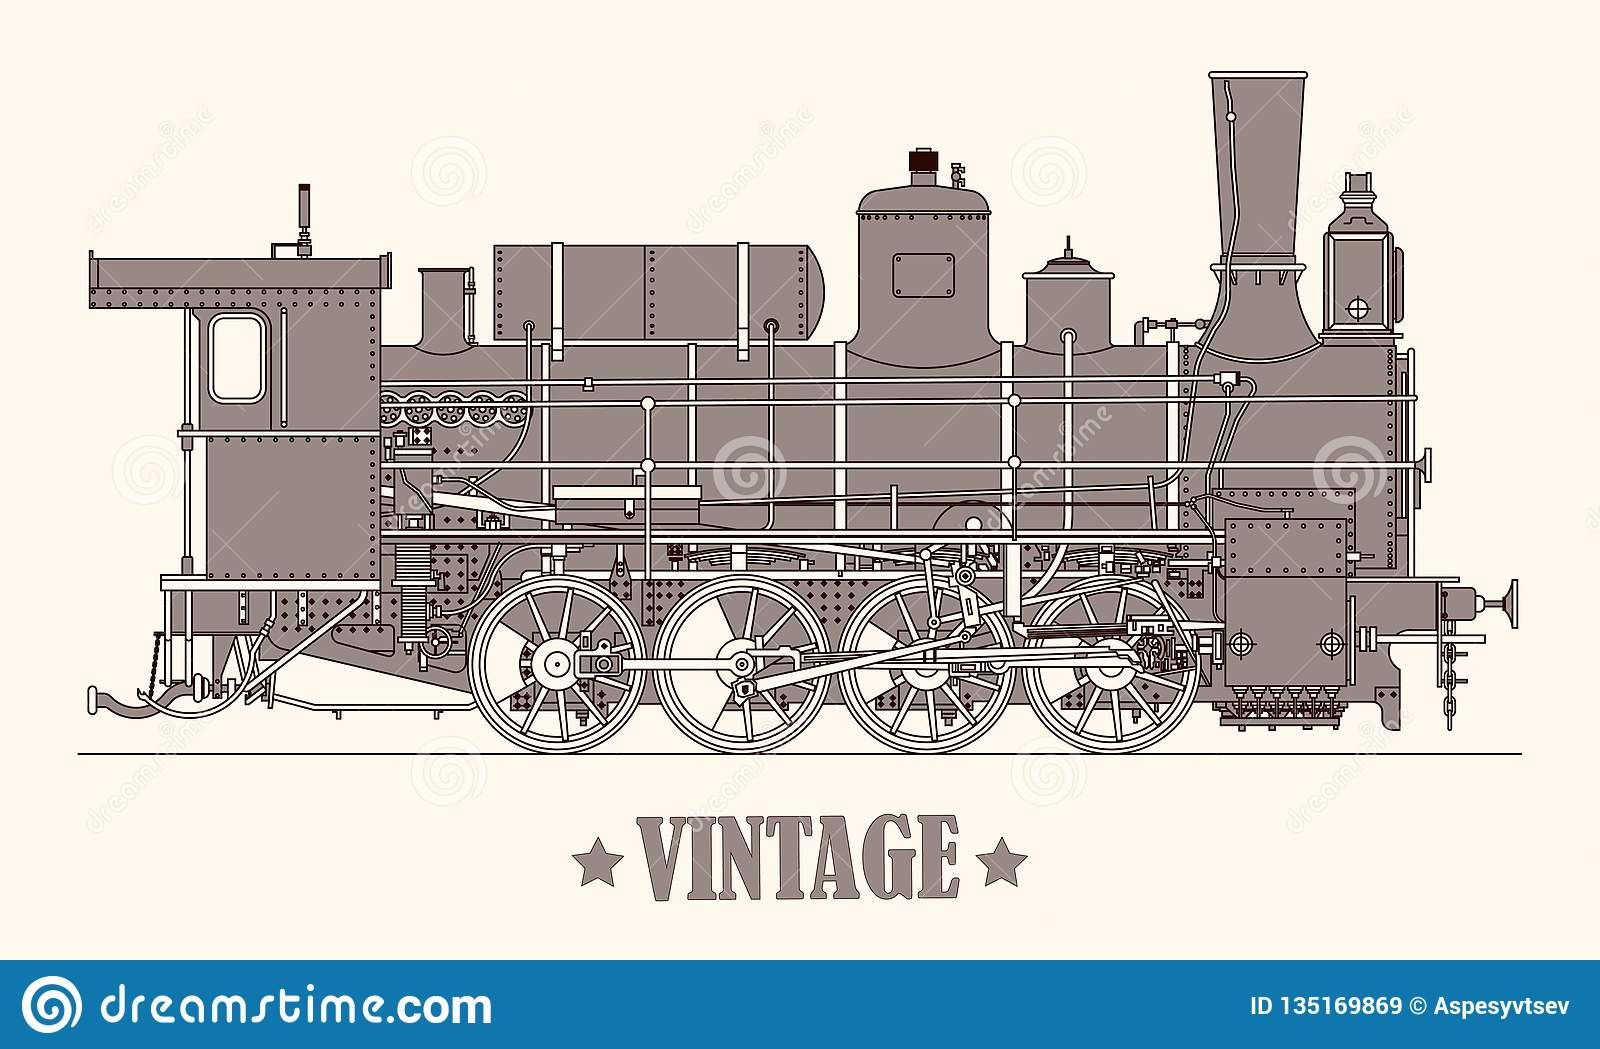 Vintage cartoon hand drawn steam locomotive train. Vector illustration